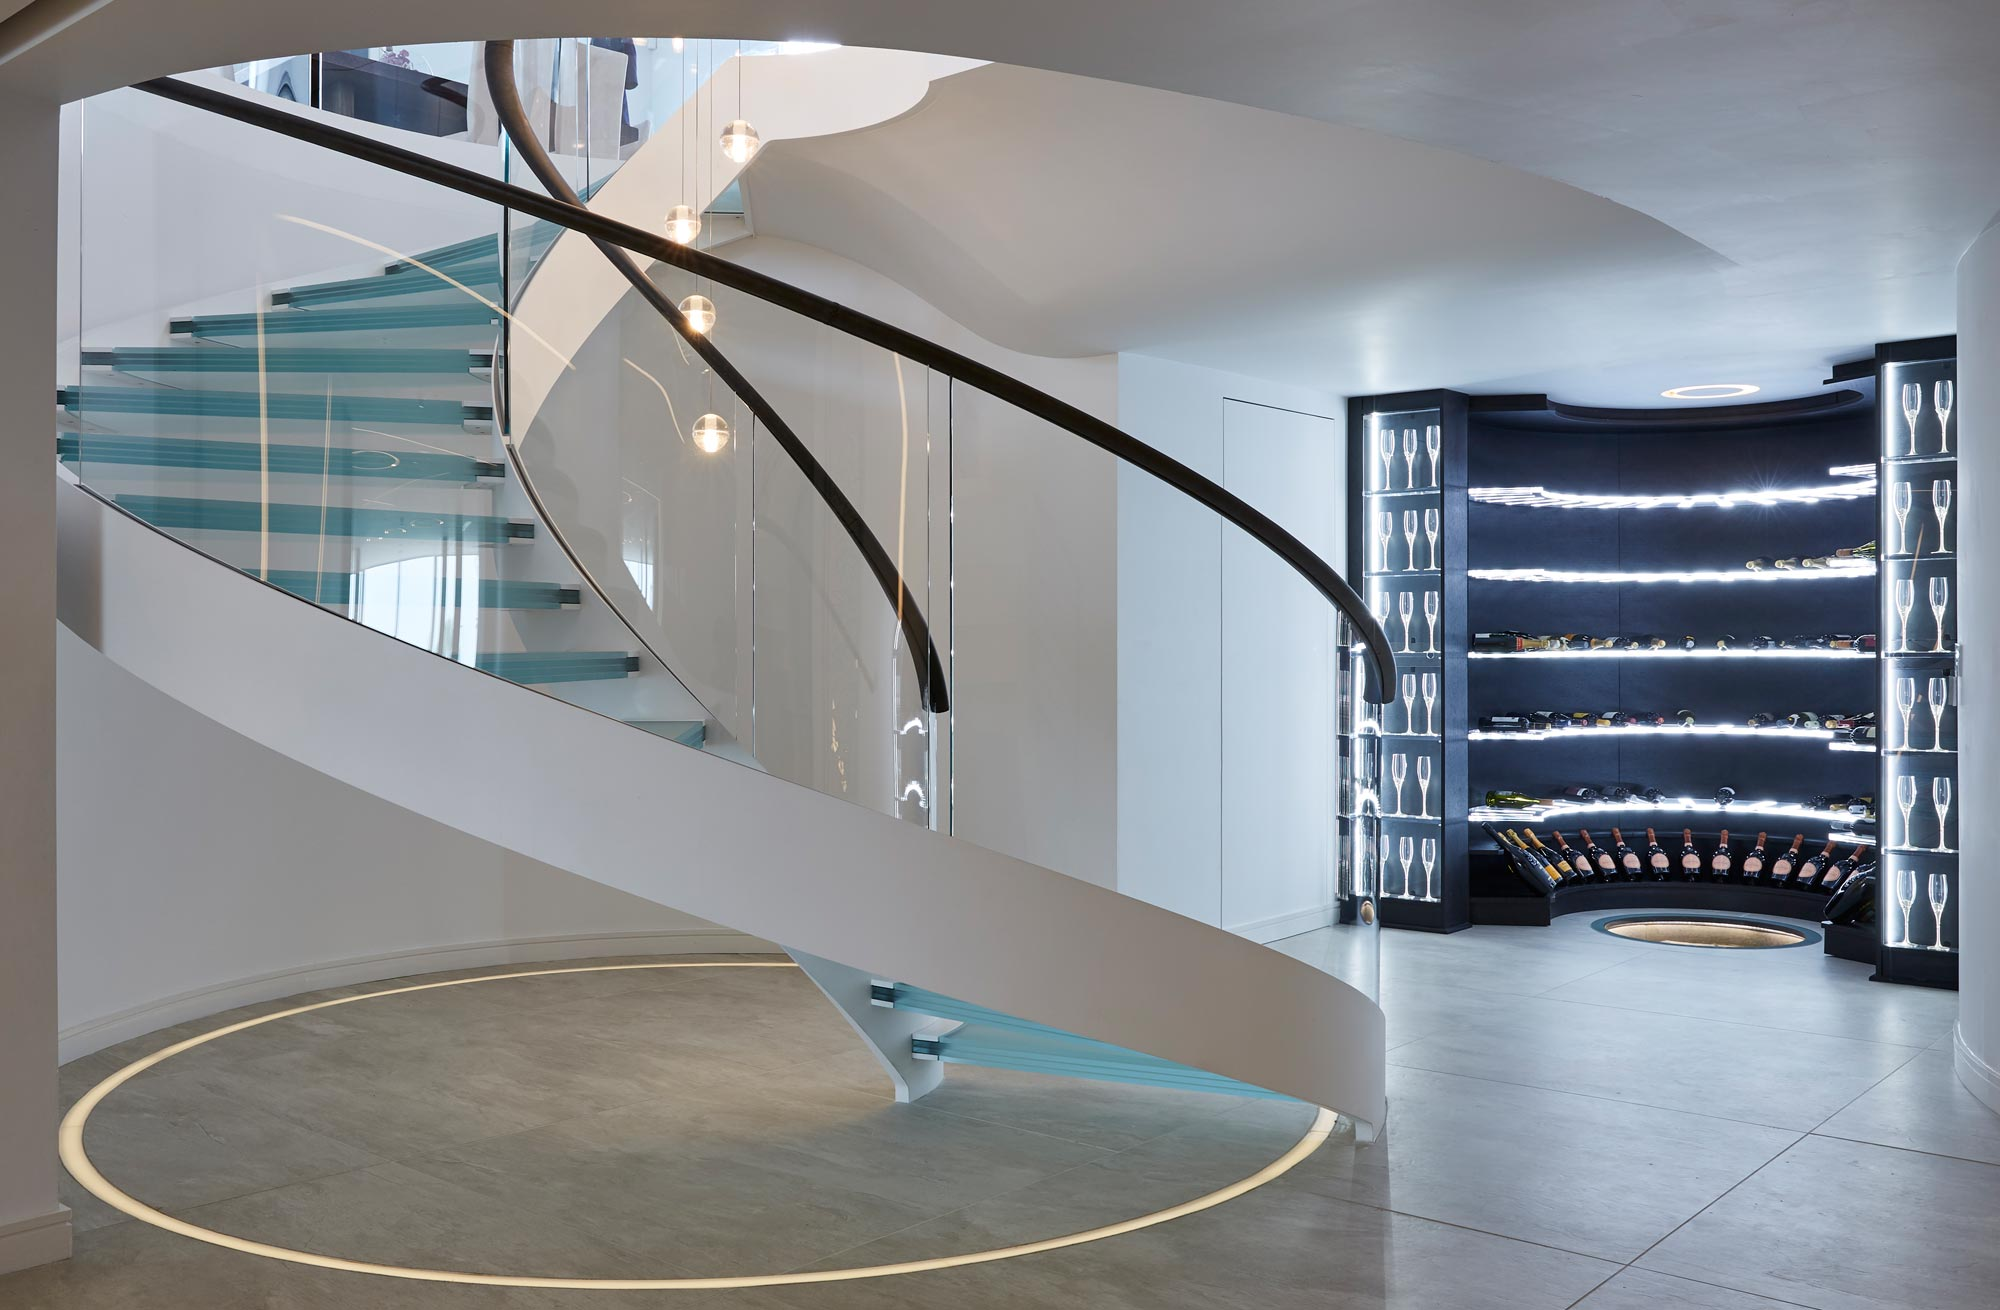 Staircase lighting designer and Bisca worked together on this project